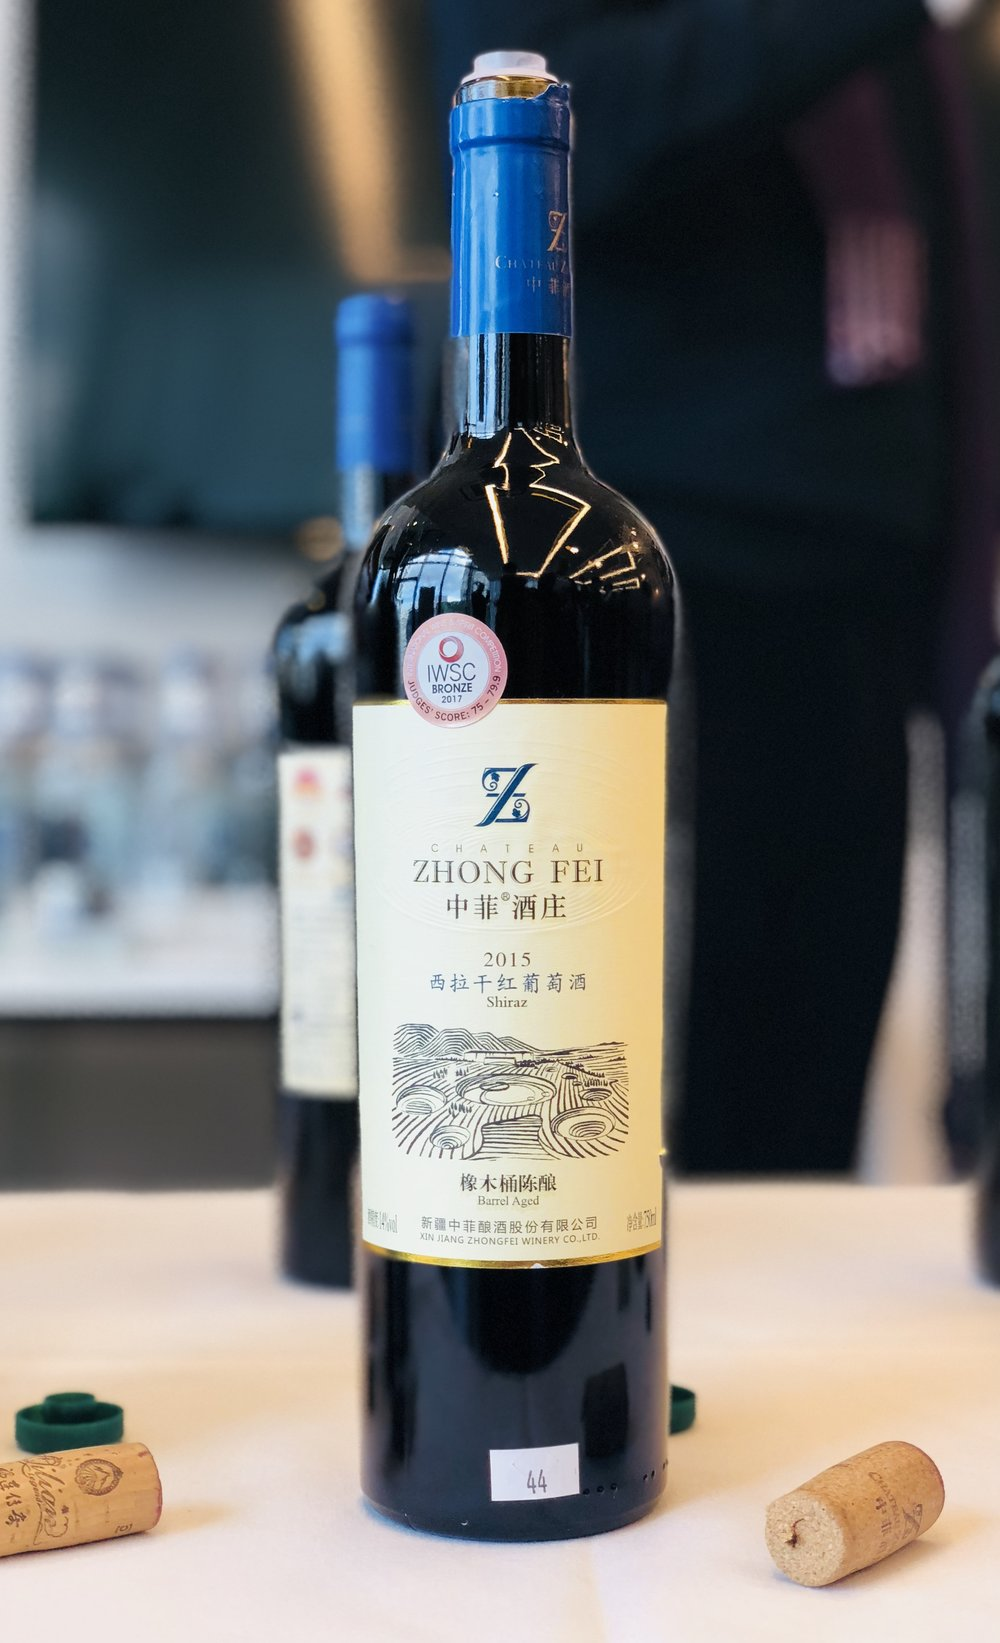 Zhong Fei Barrel Aged Shiraz 2015, Xinjiang Zhofei Winery